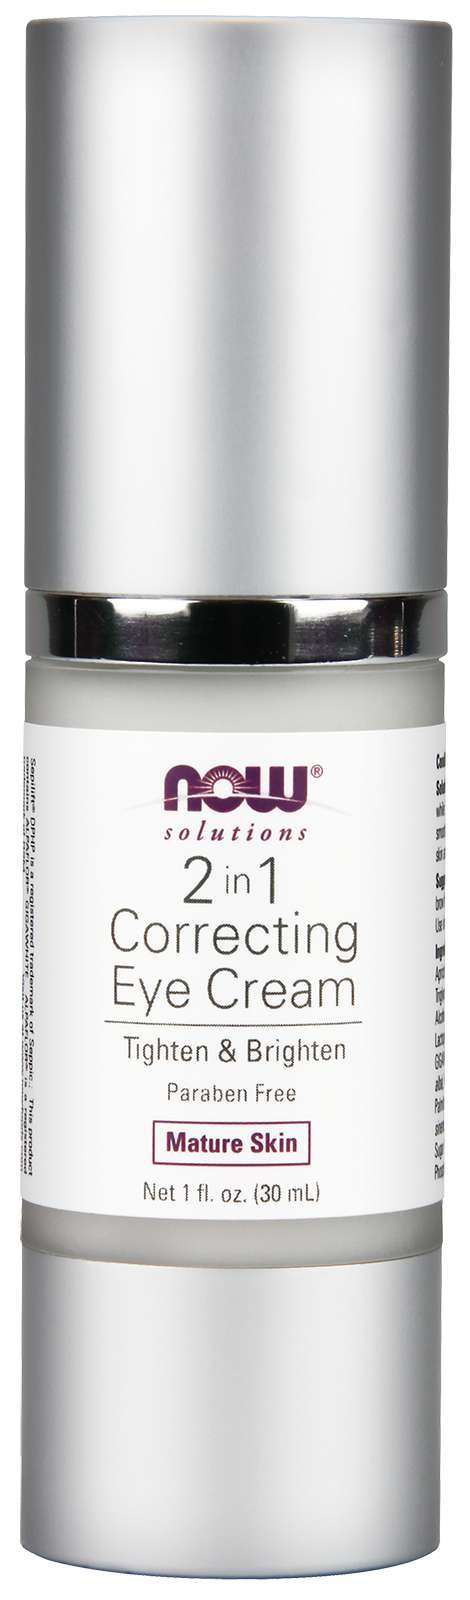 2 in1 Correcting Eye Cream 30mL